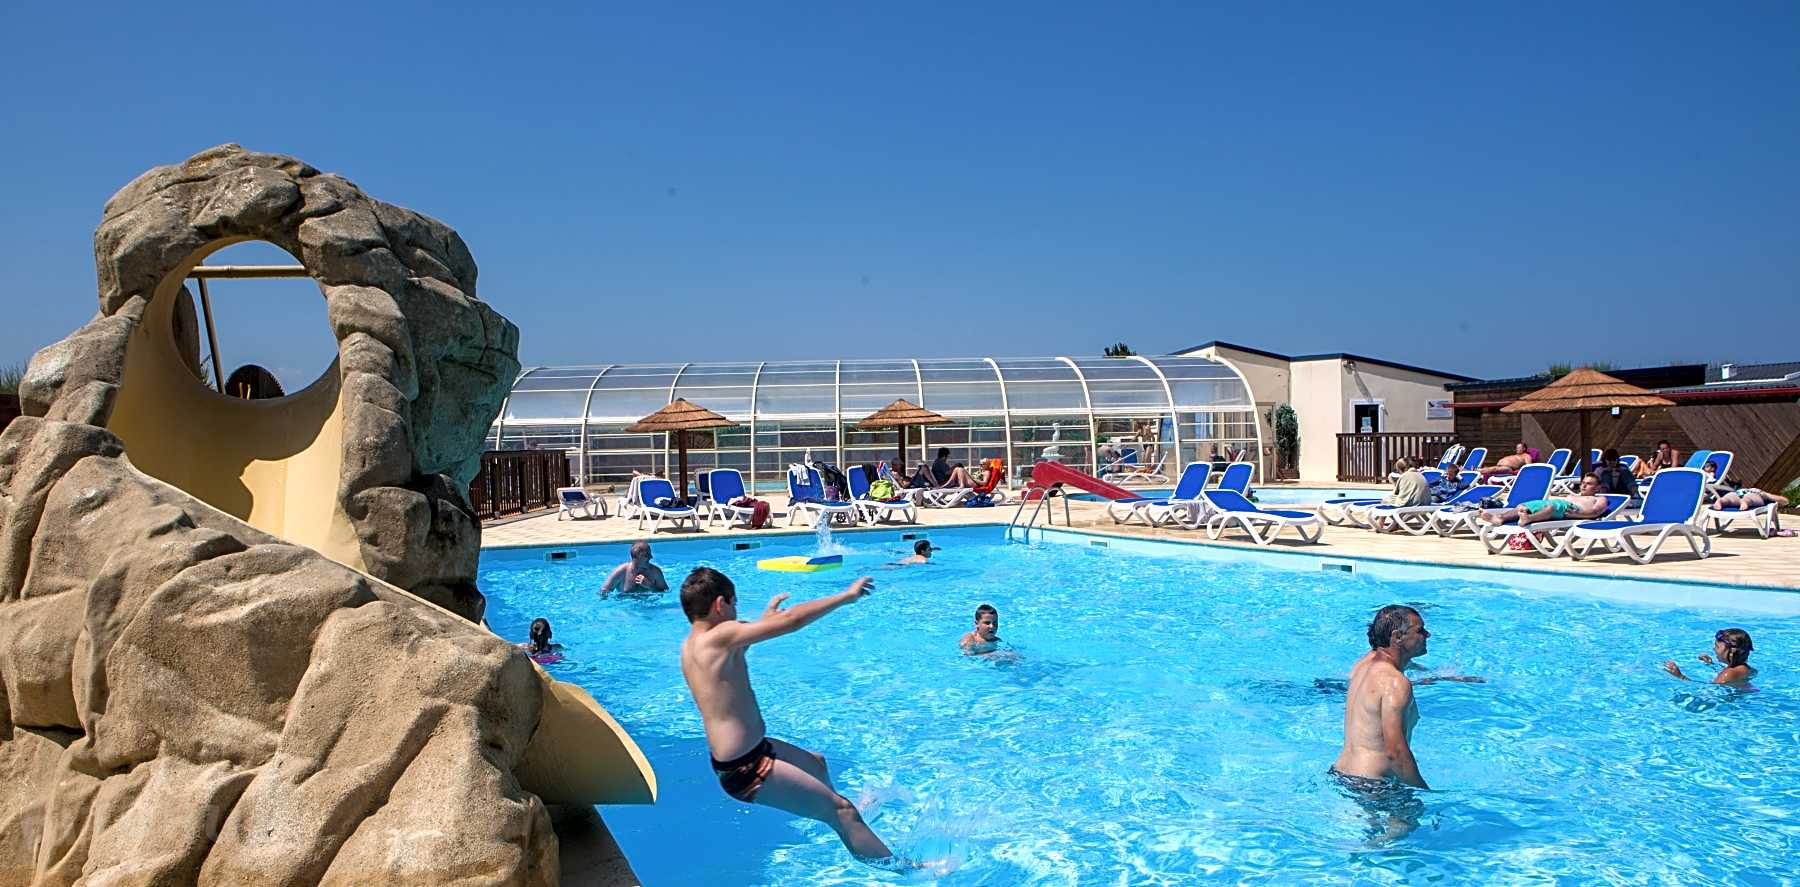 Best Campsites In Sainte Marie Du Mont, Manche 2020 From ... pour Piscine Carentan